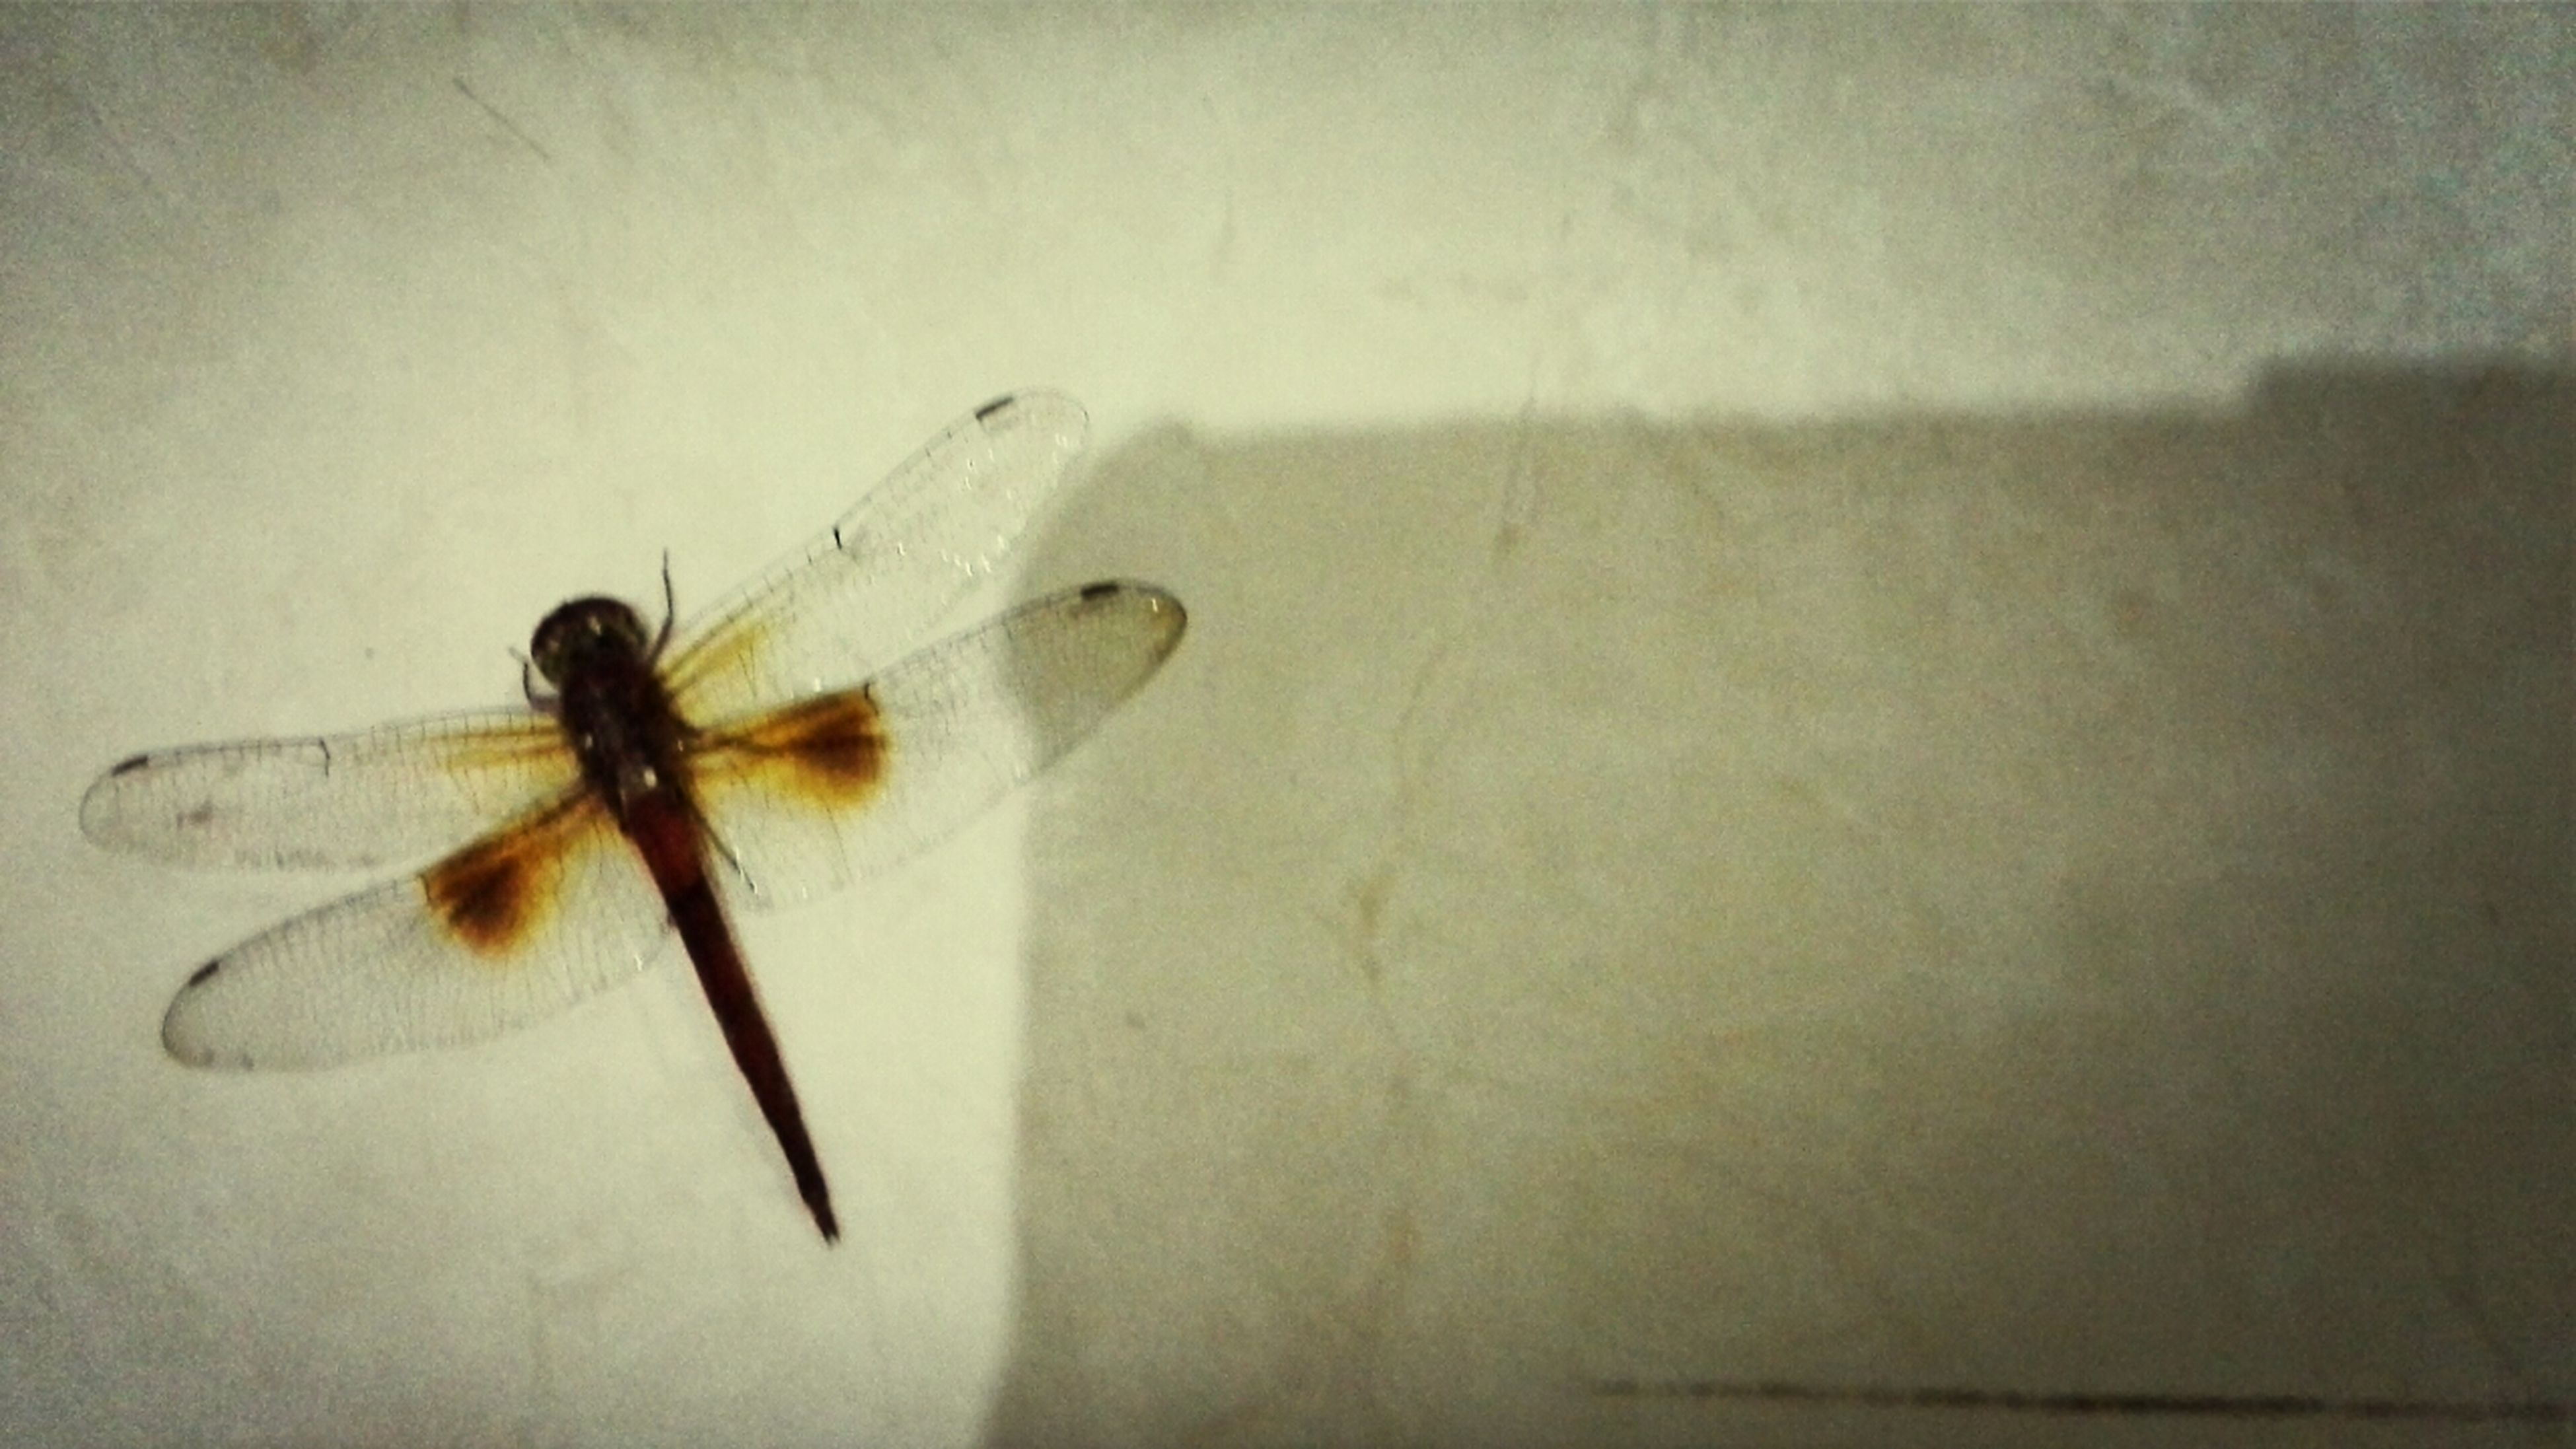 Dragonfly Facing The Death Alone